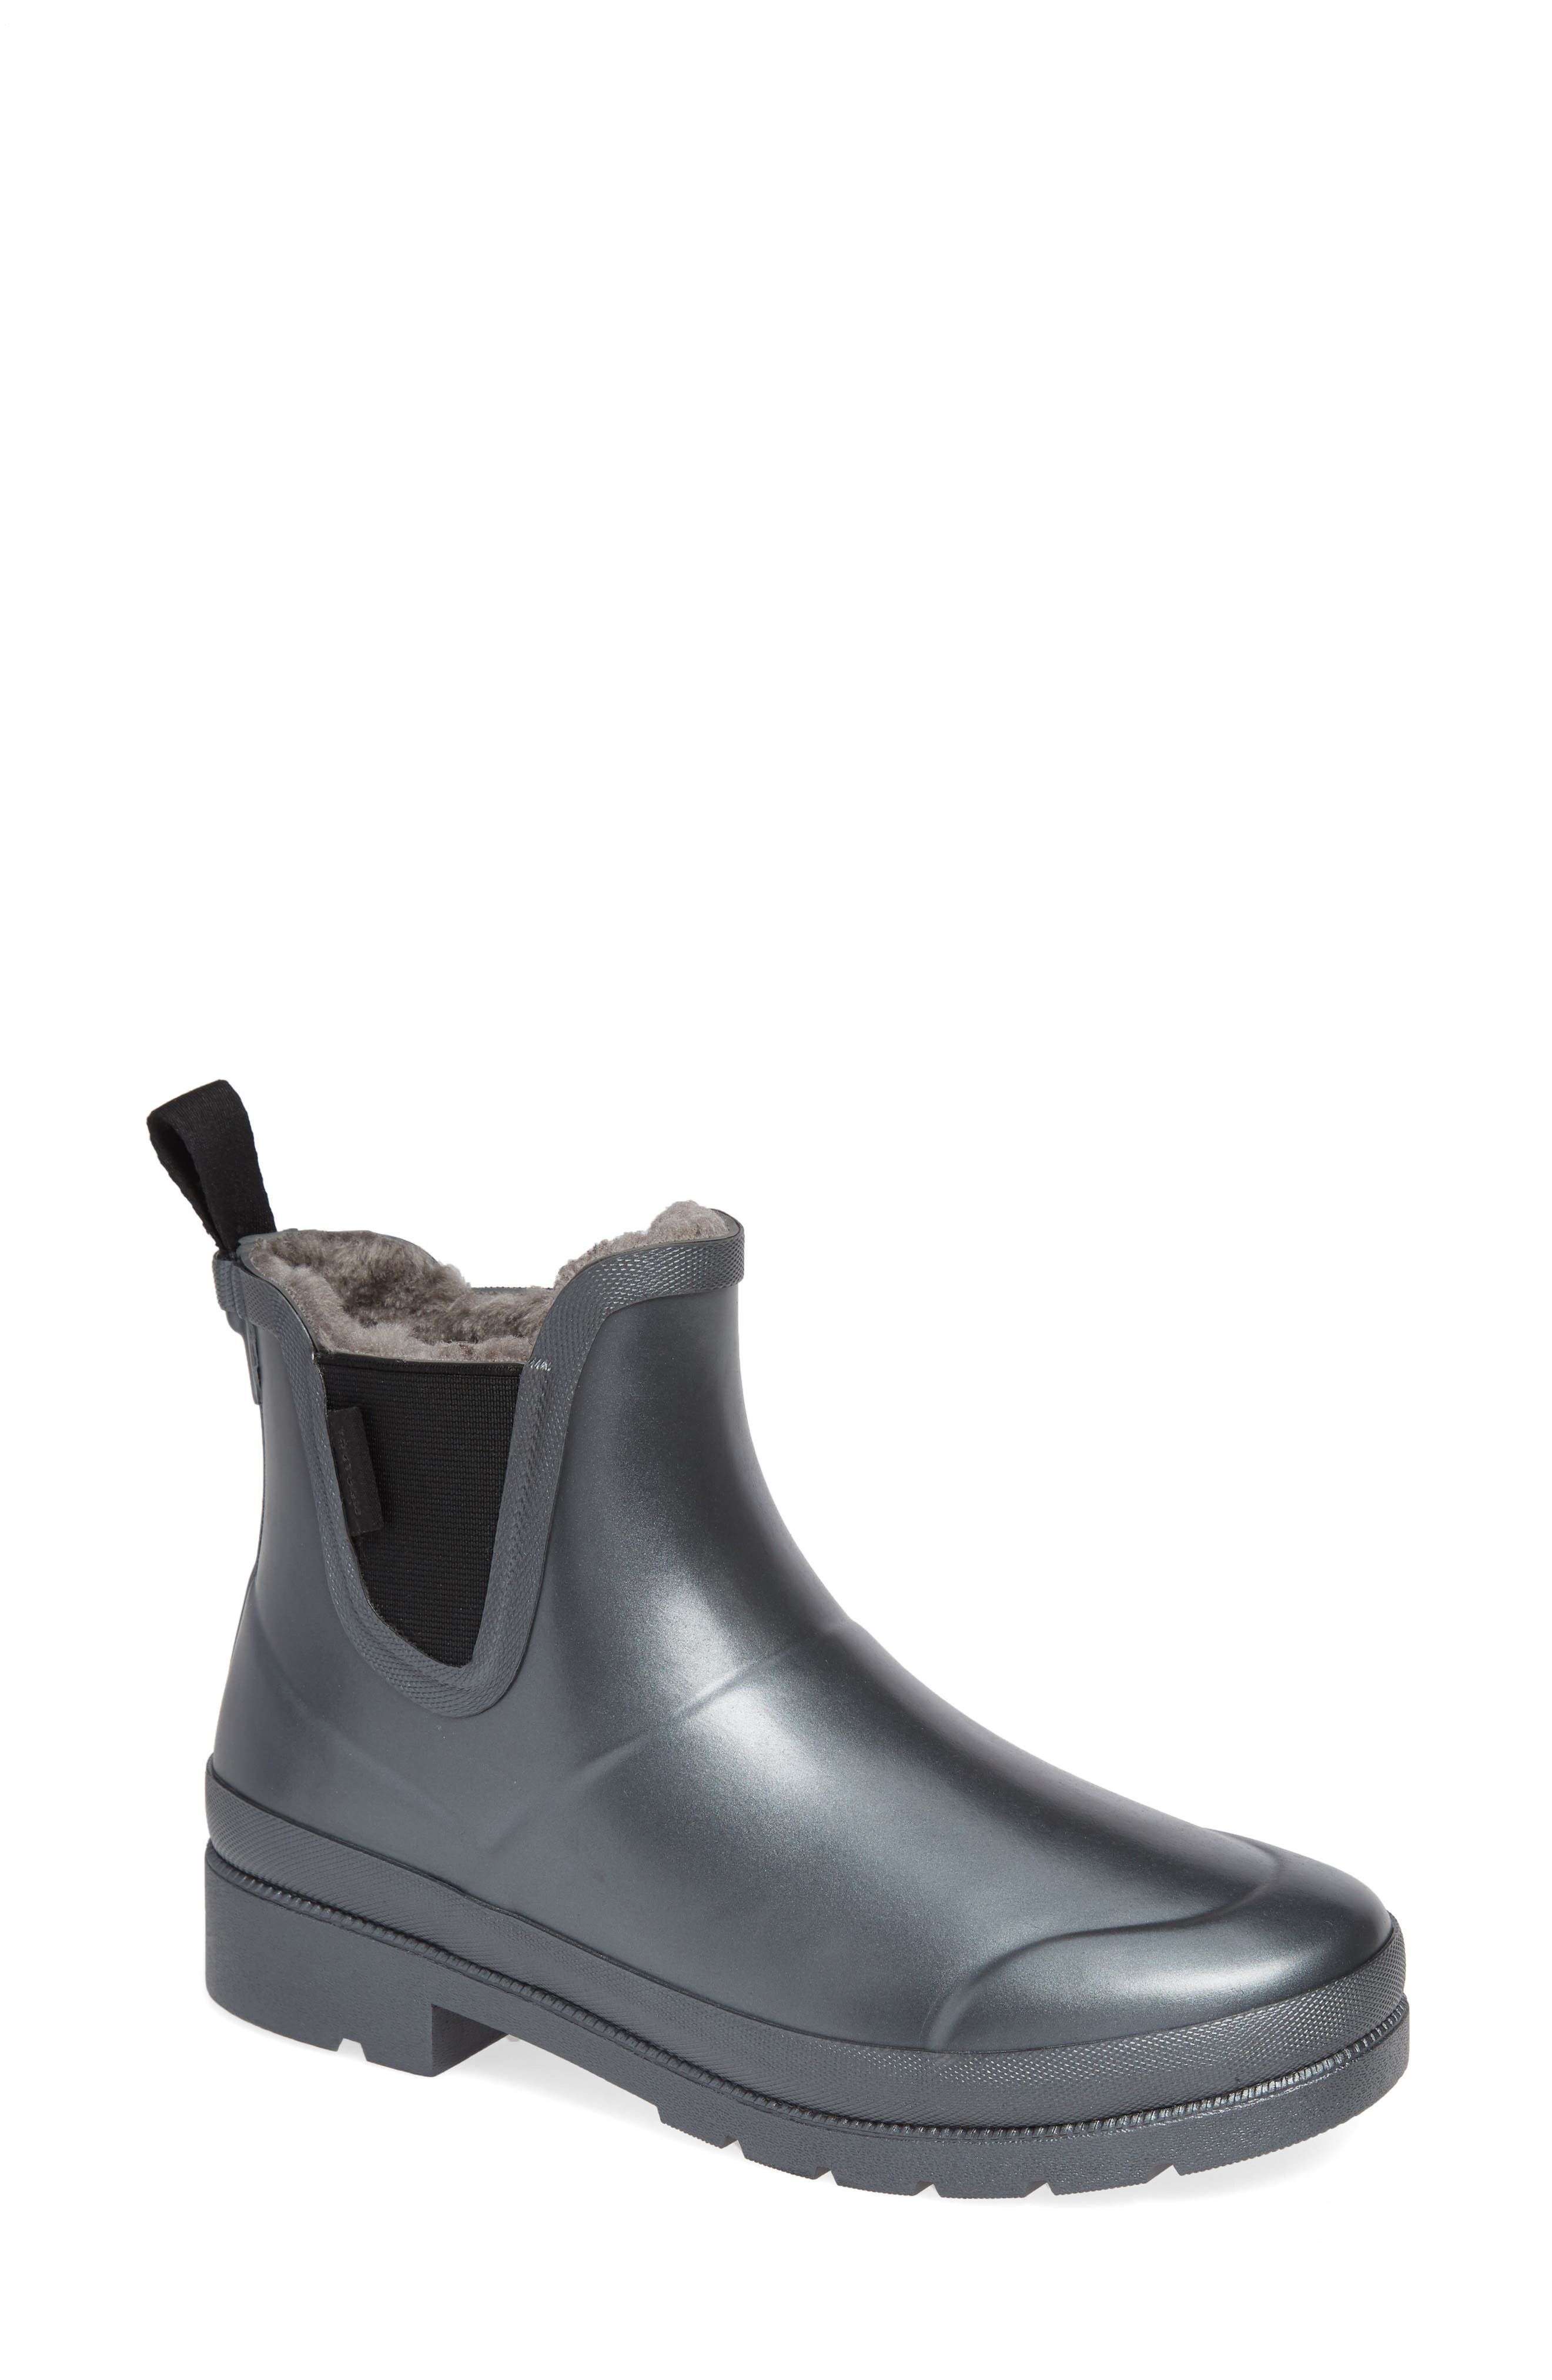 Chelsea Rain Boot,                         Main,                         color, PEWTER